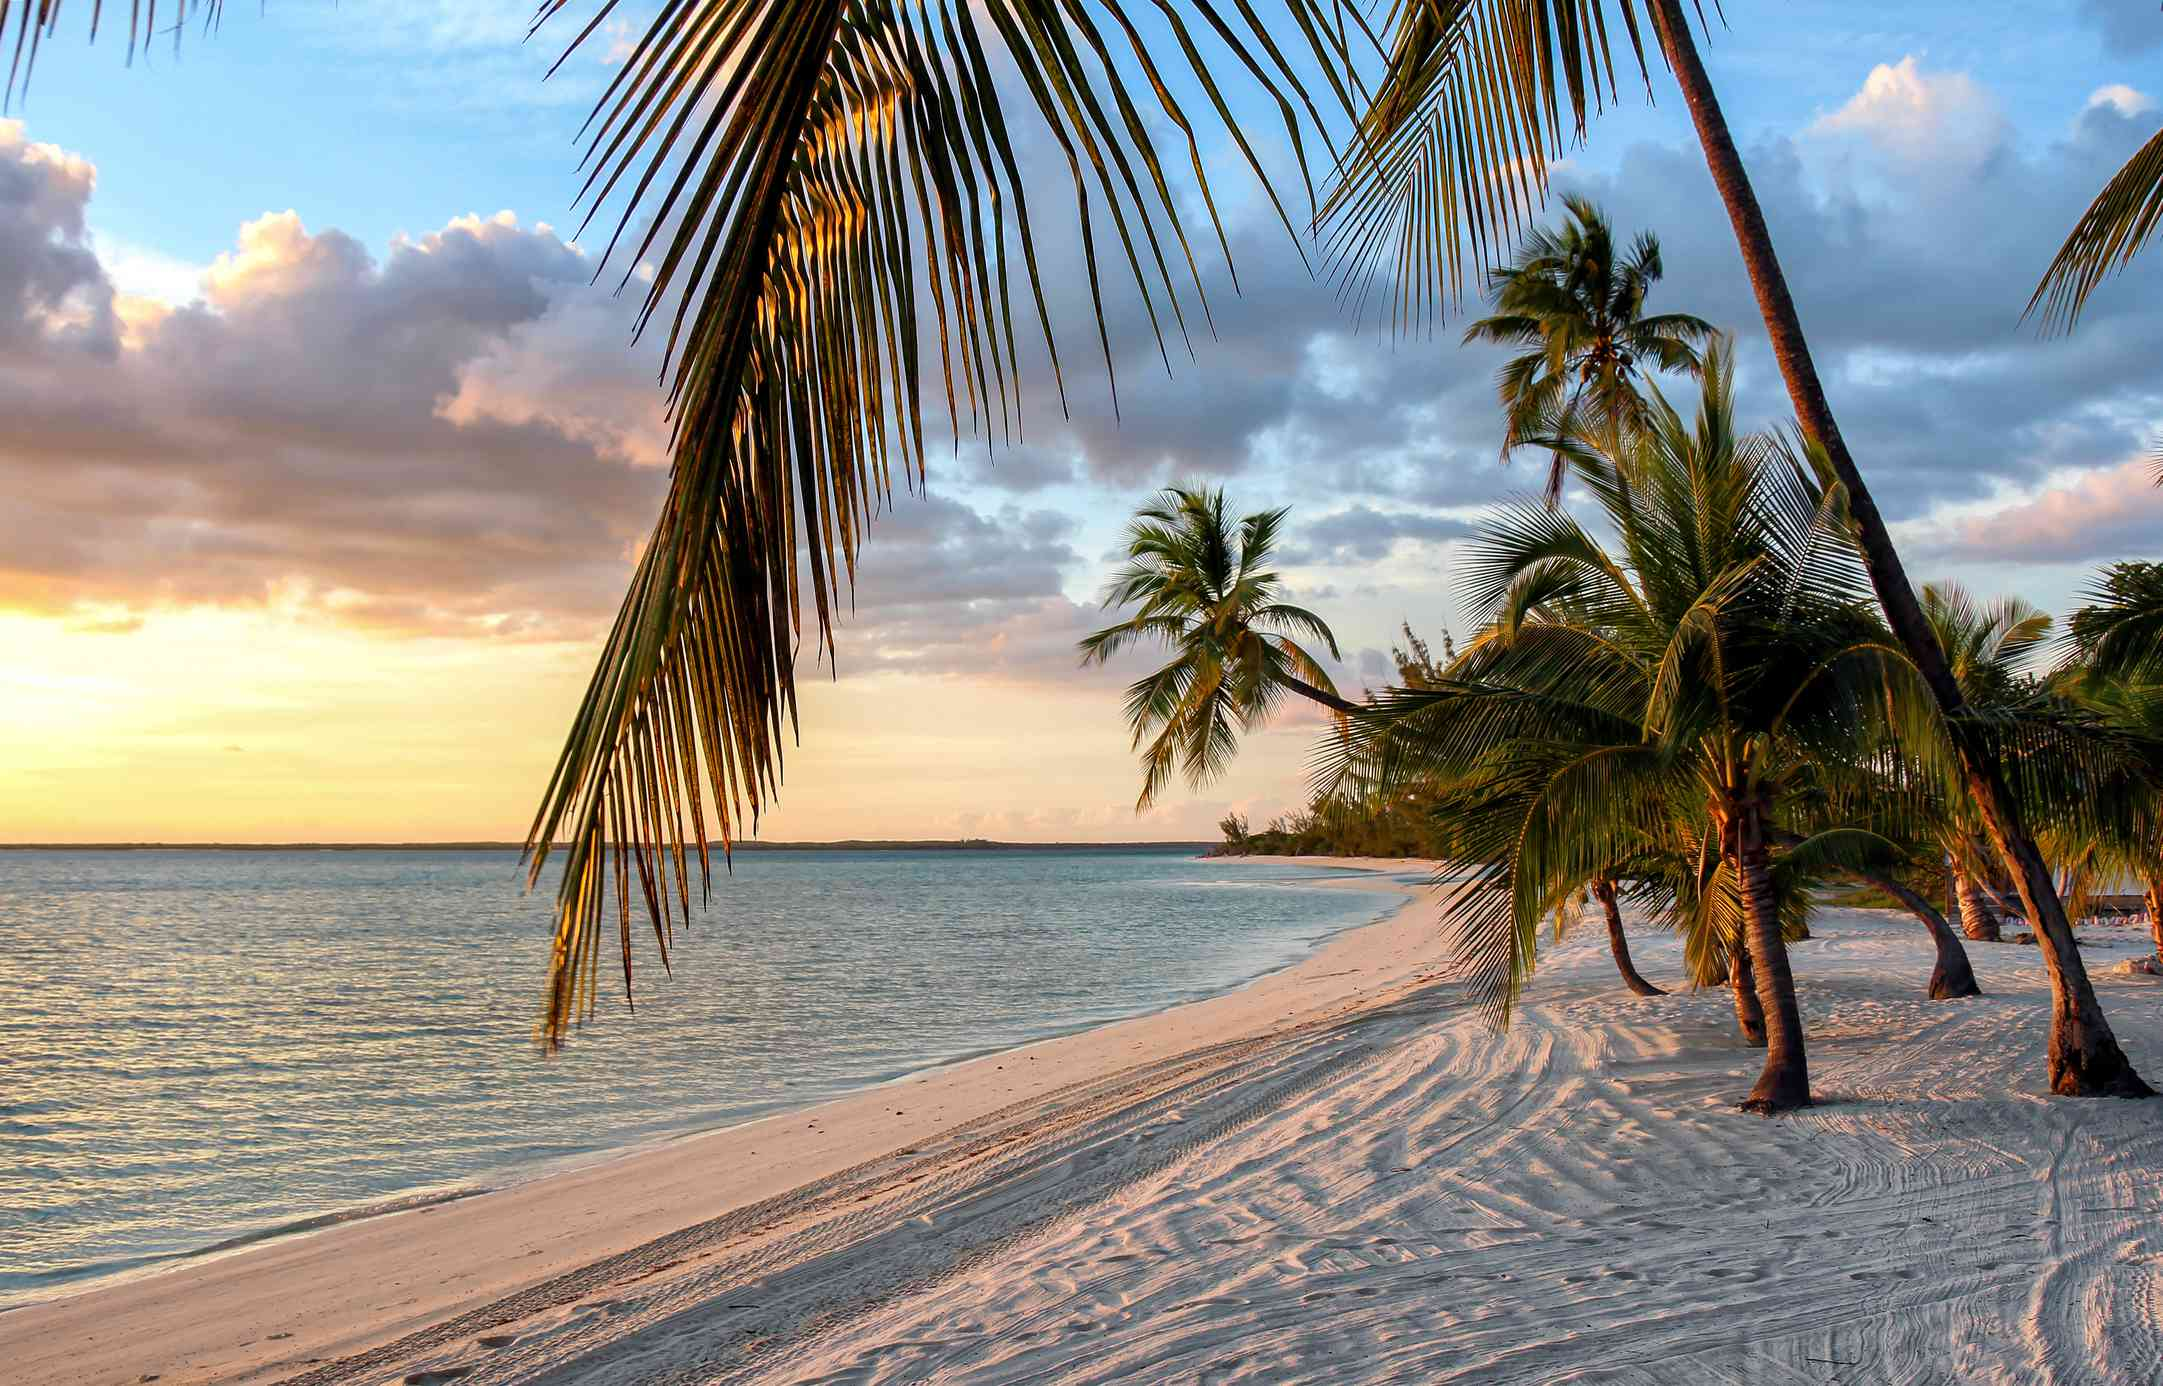 A beautiful sunset in the Bahamas